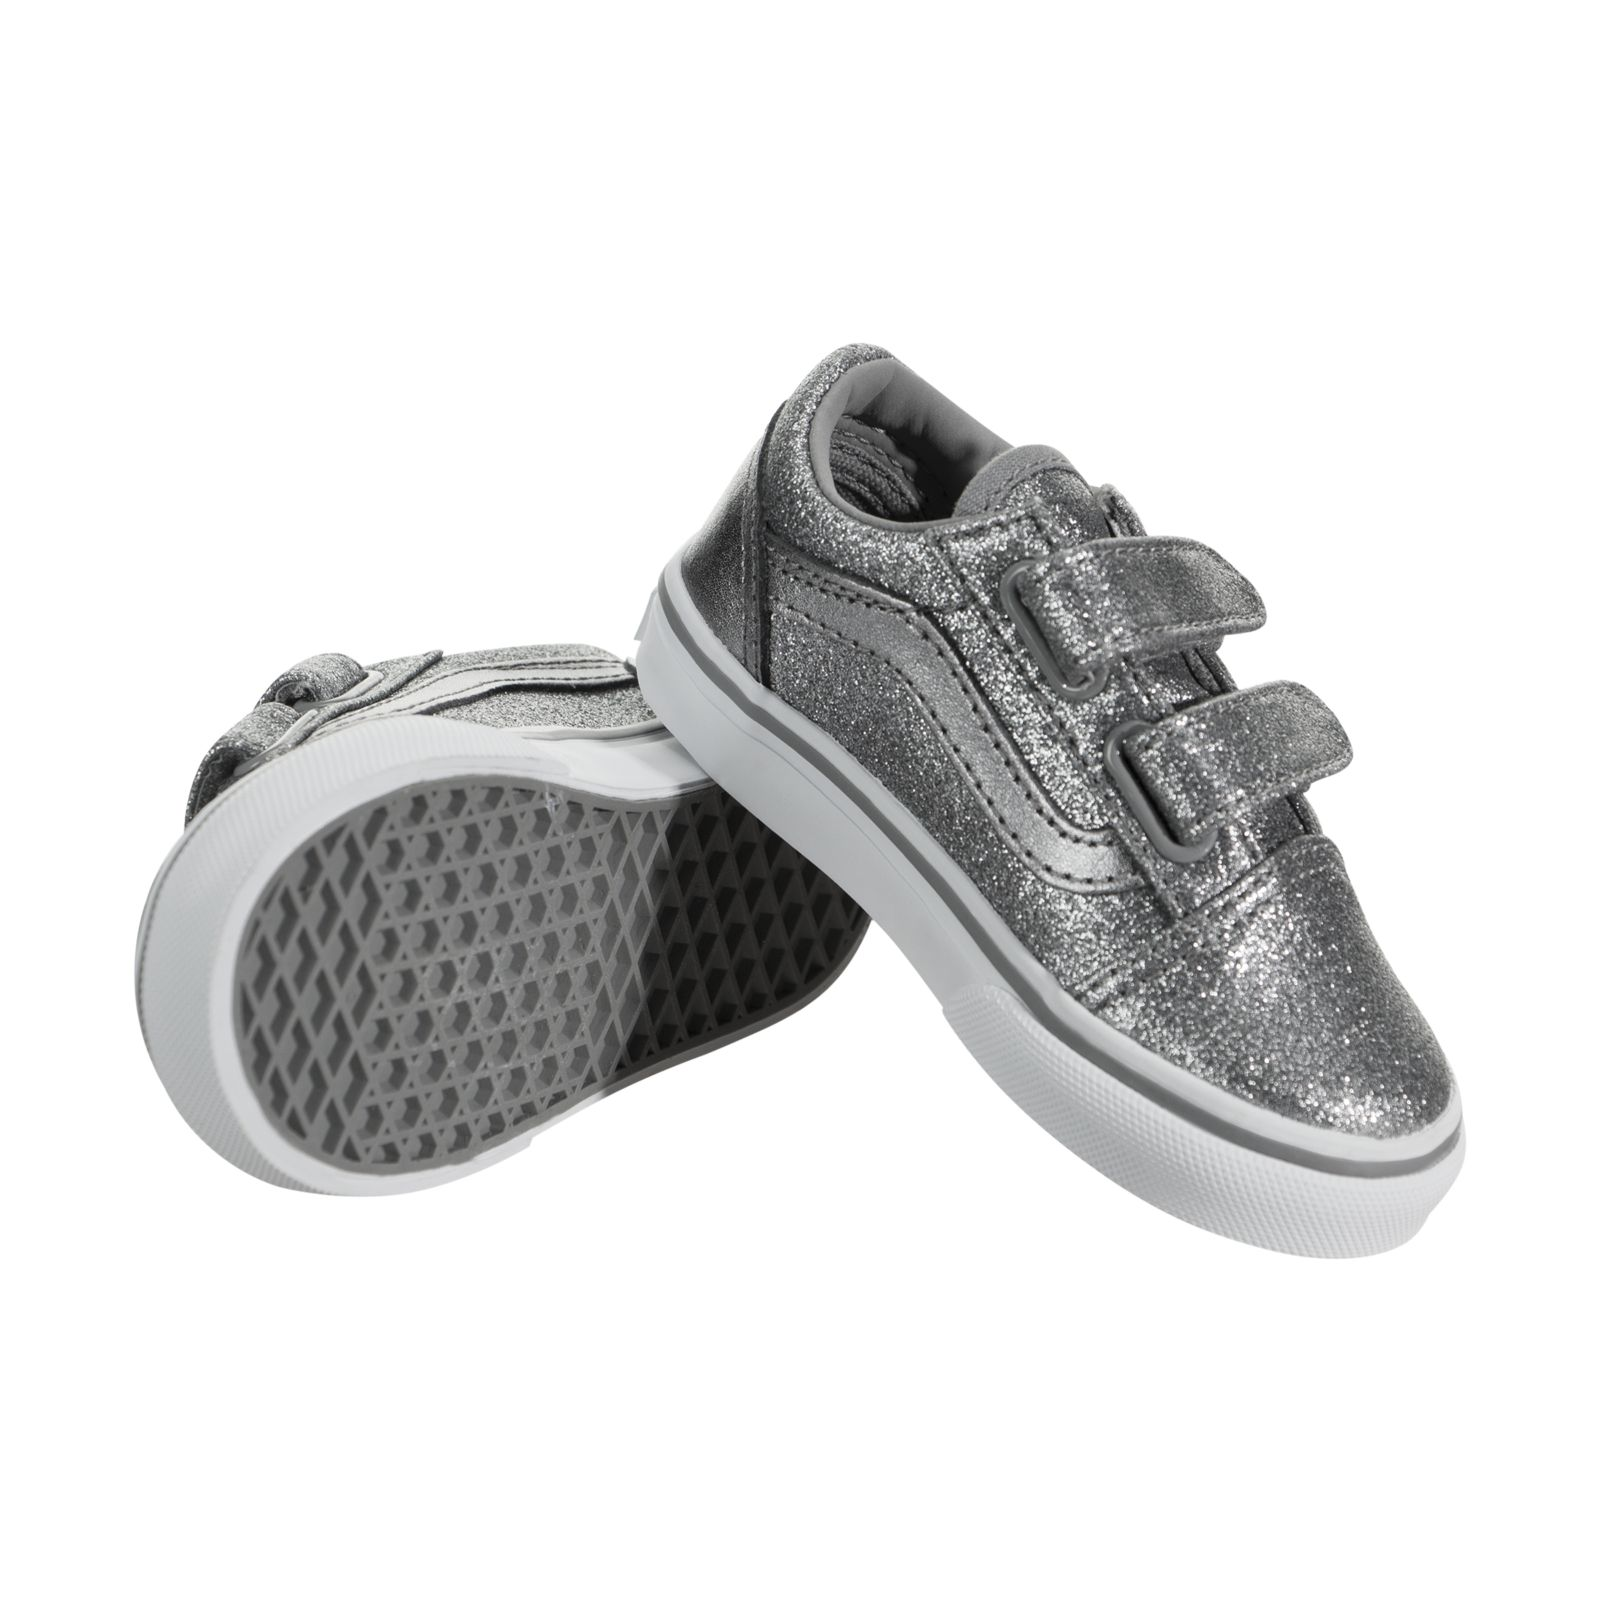 3a3f174faa47ca VANS Toddlers Old Skool V Glitter Metallic Frost Gray Skate Shoe 10  Infants. About this product. Picture 1 of 5  Picture 2 of 5  Picture 3 of 5  ...